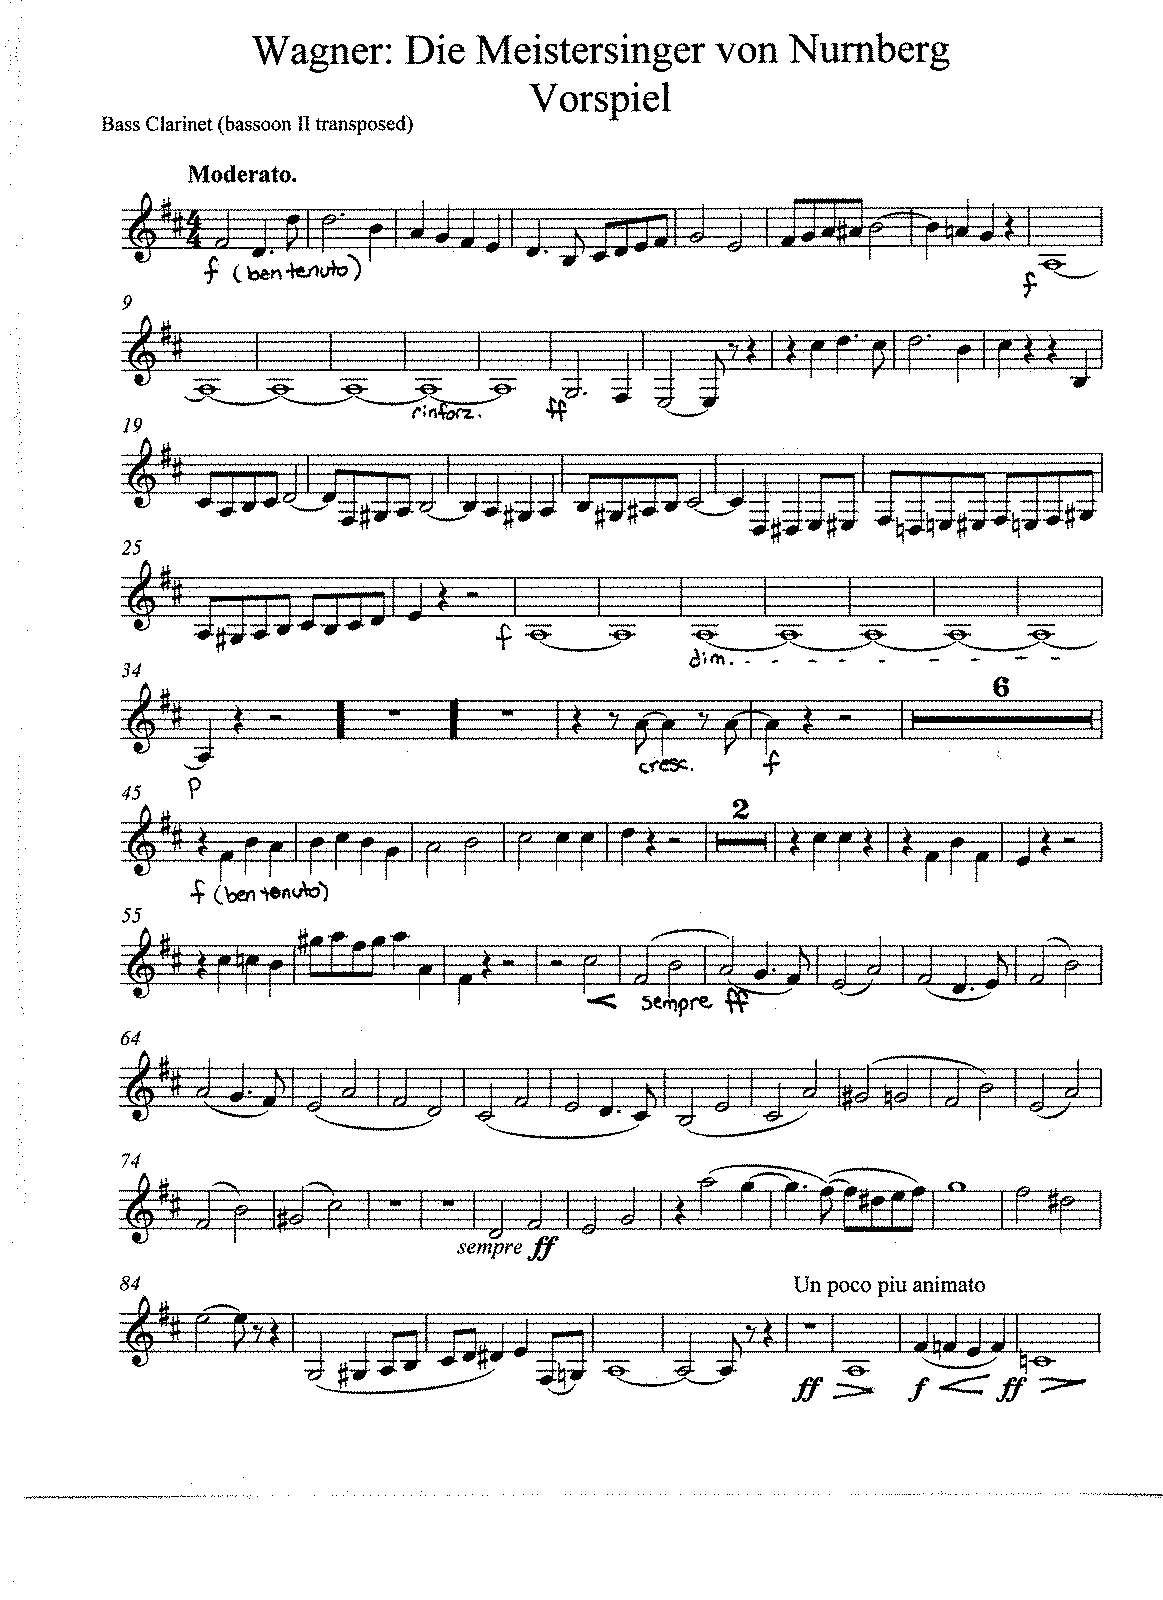 PMLP16799-Wagner Die Meistersinger 2nd basson transposed to bass clar..pdf